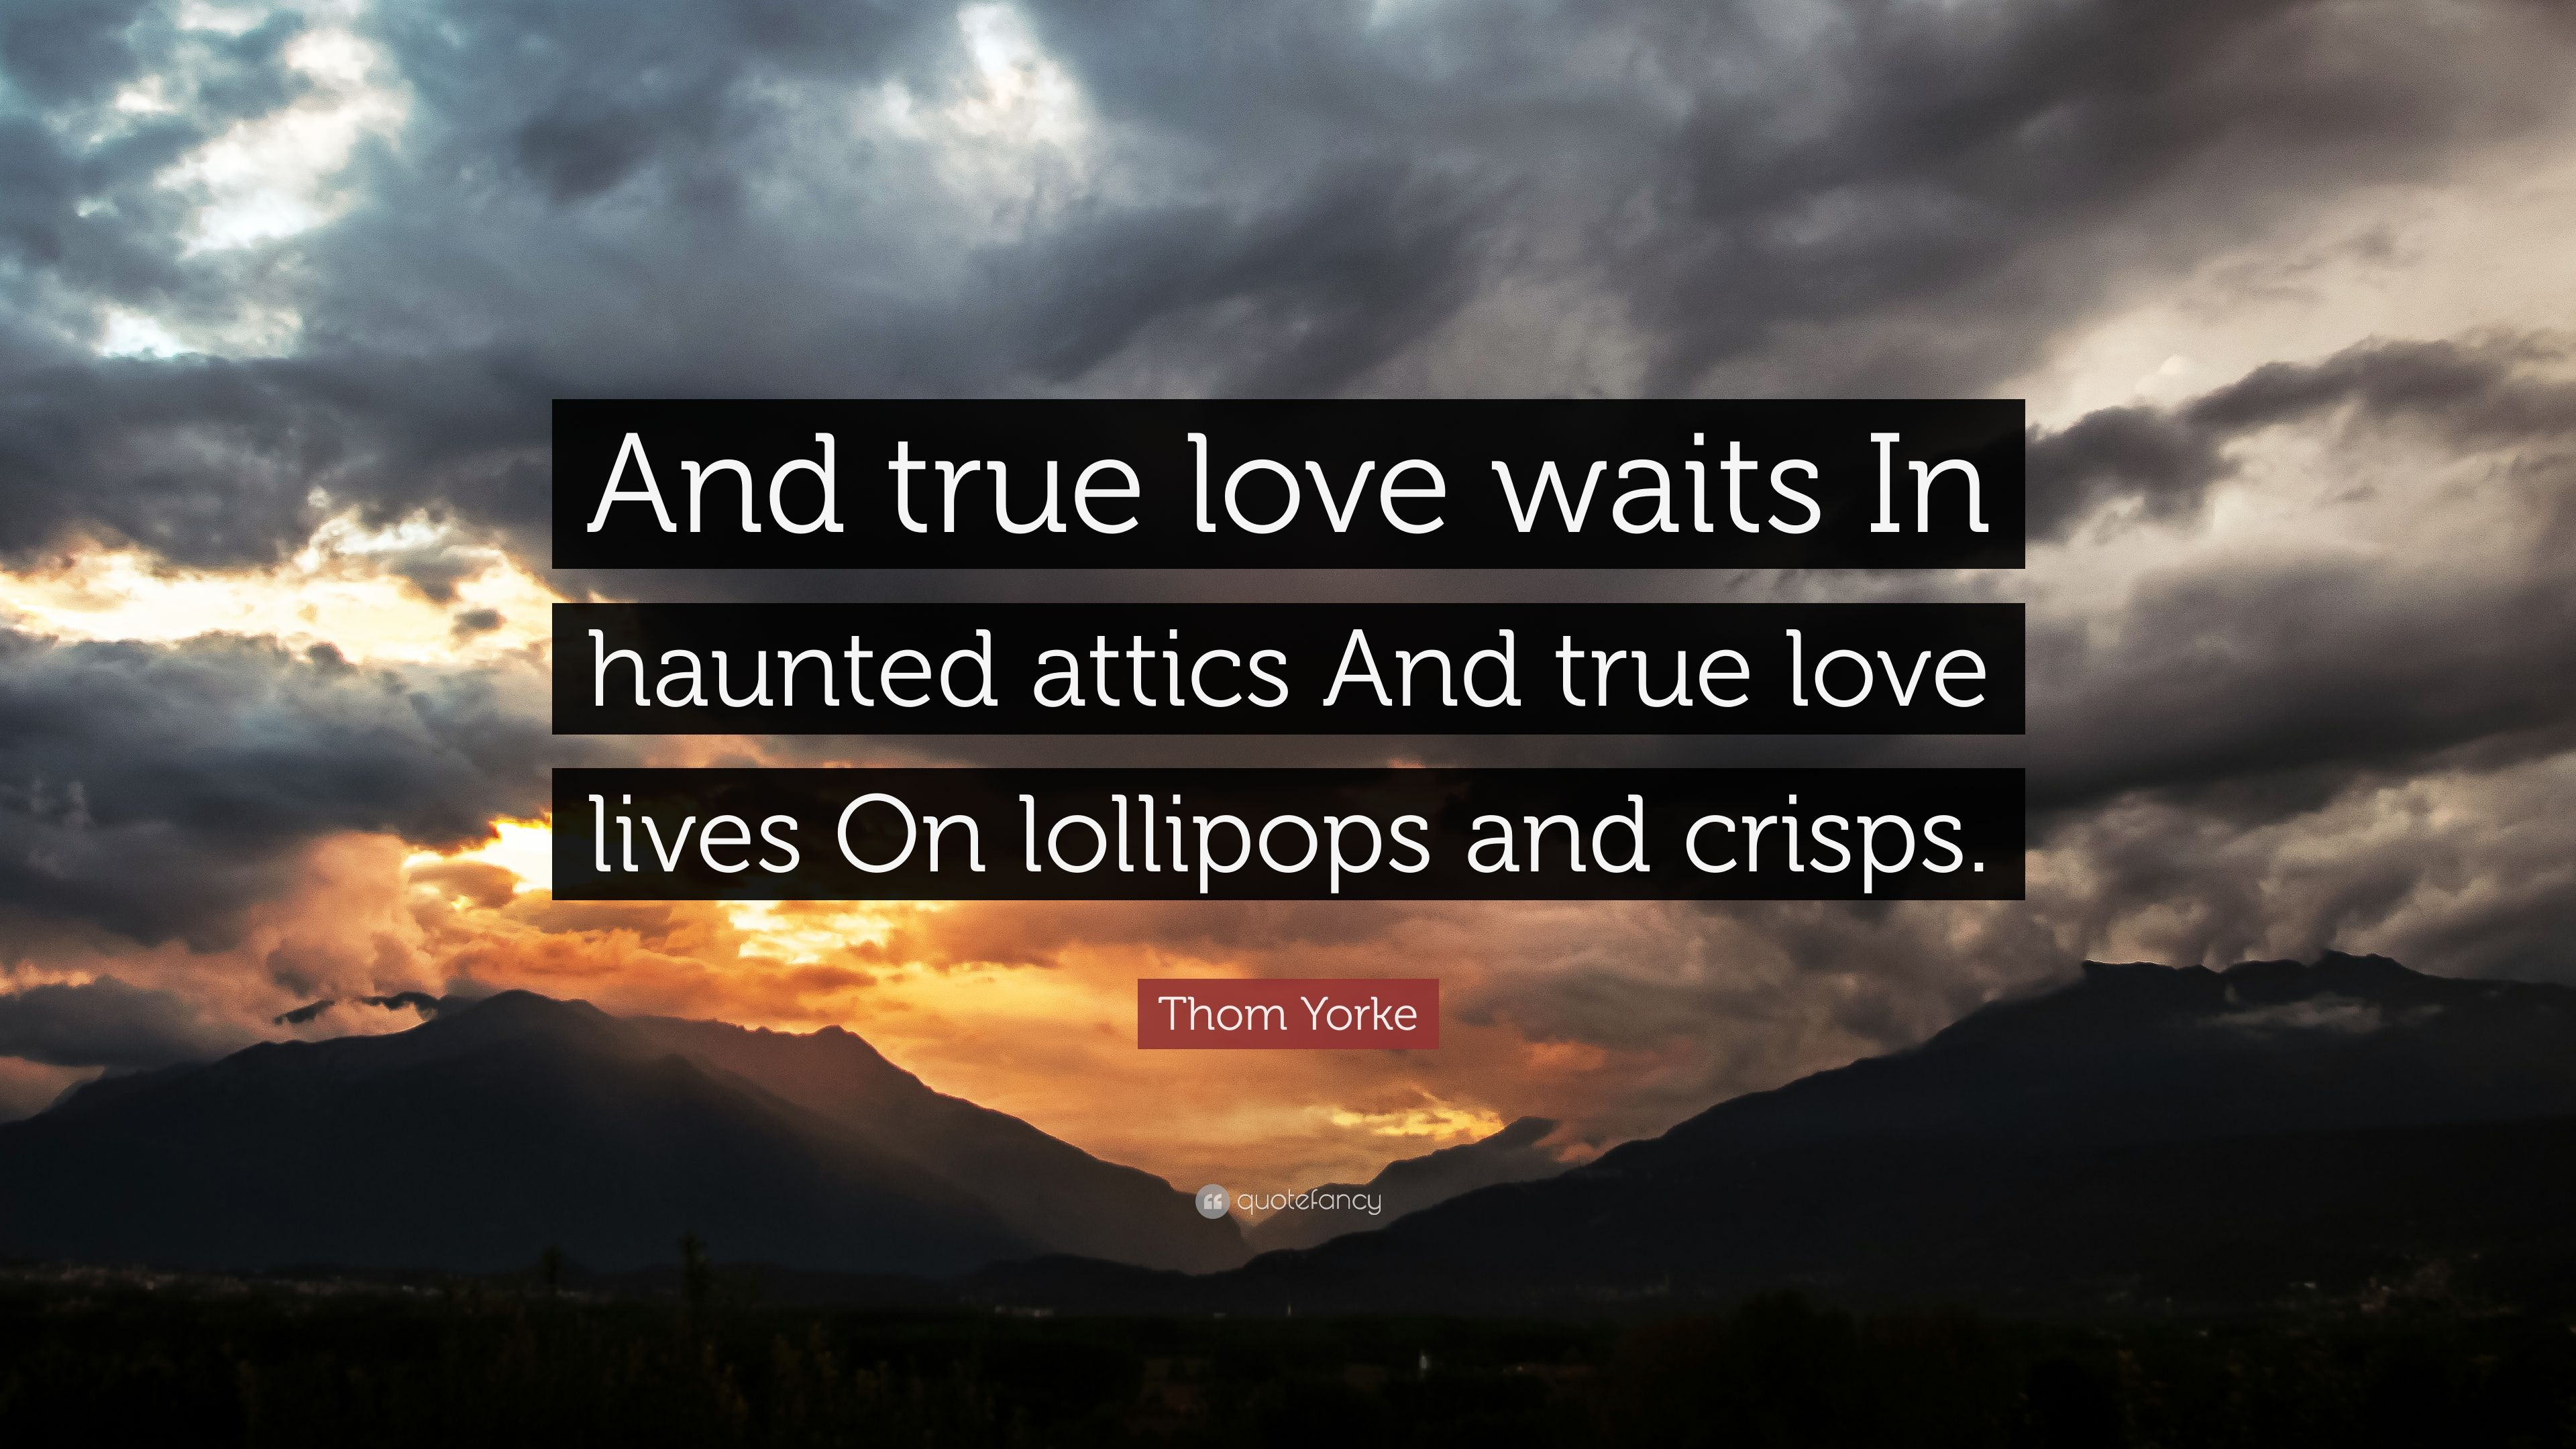 Thom Yorke Quote And True Love Waits In Haunted Attics